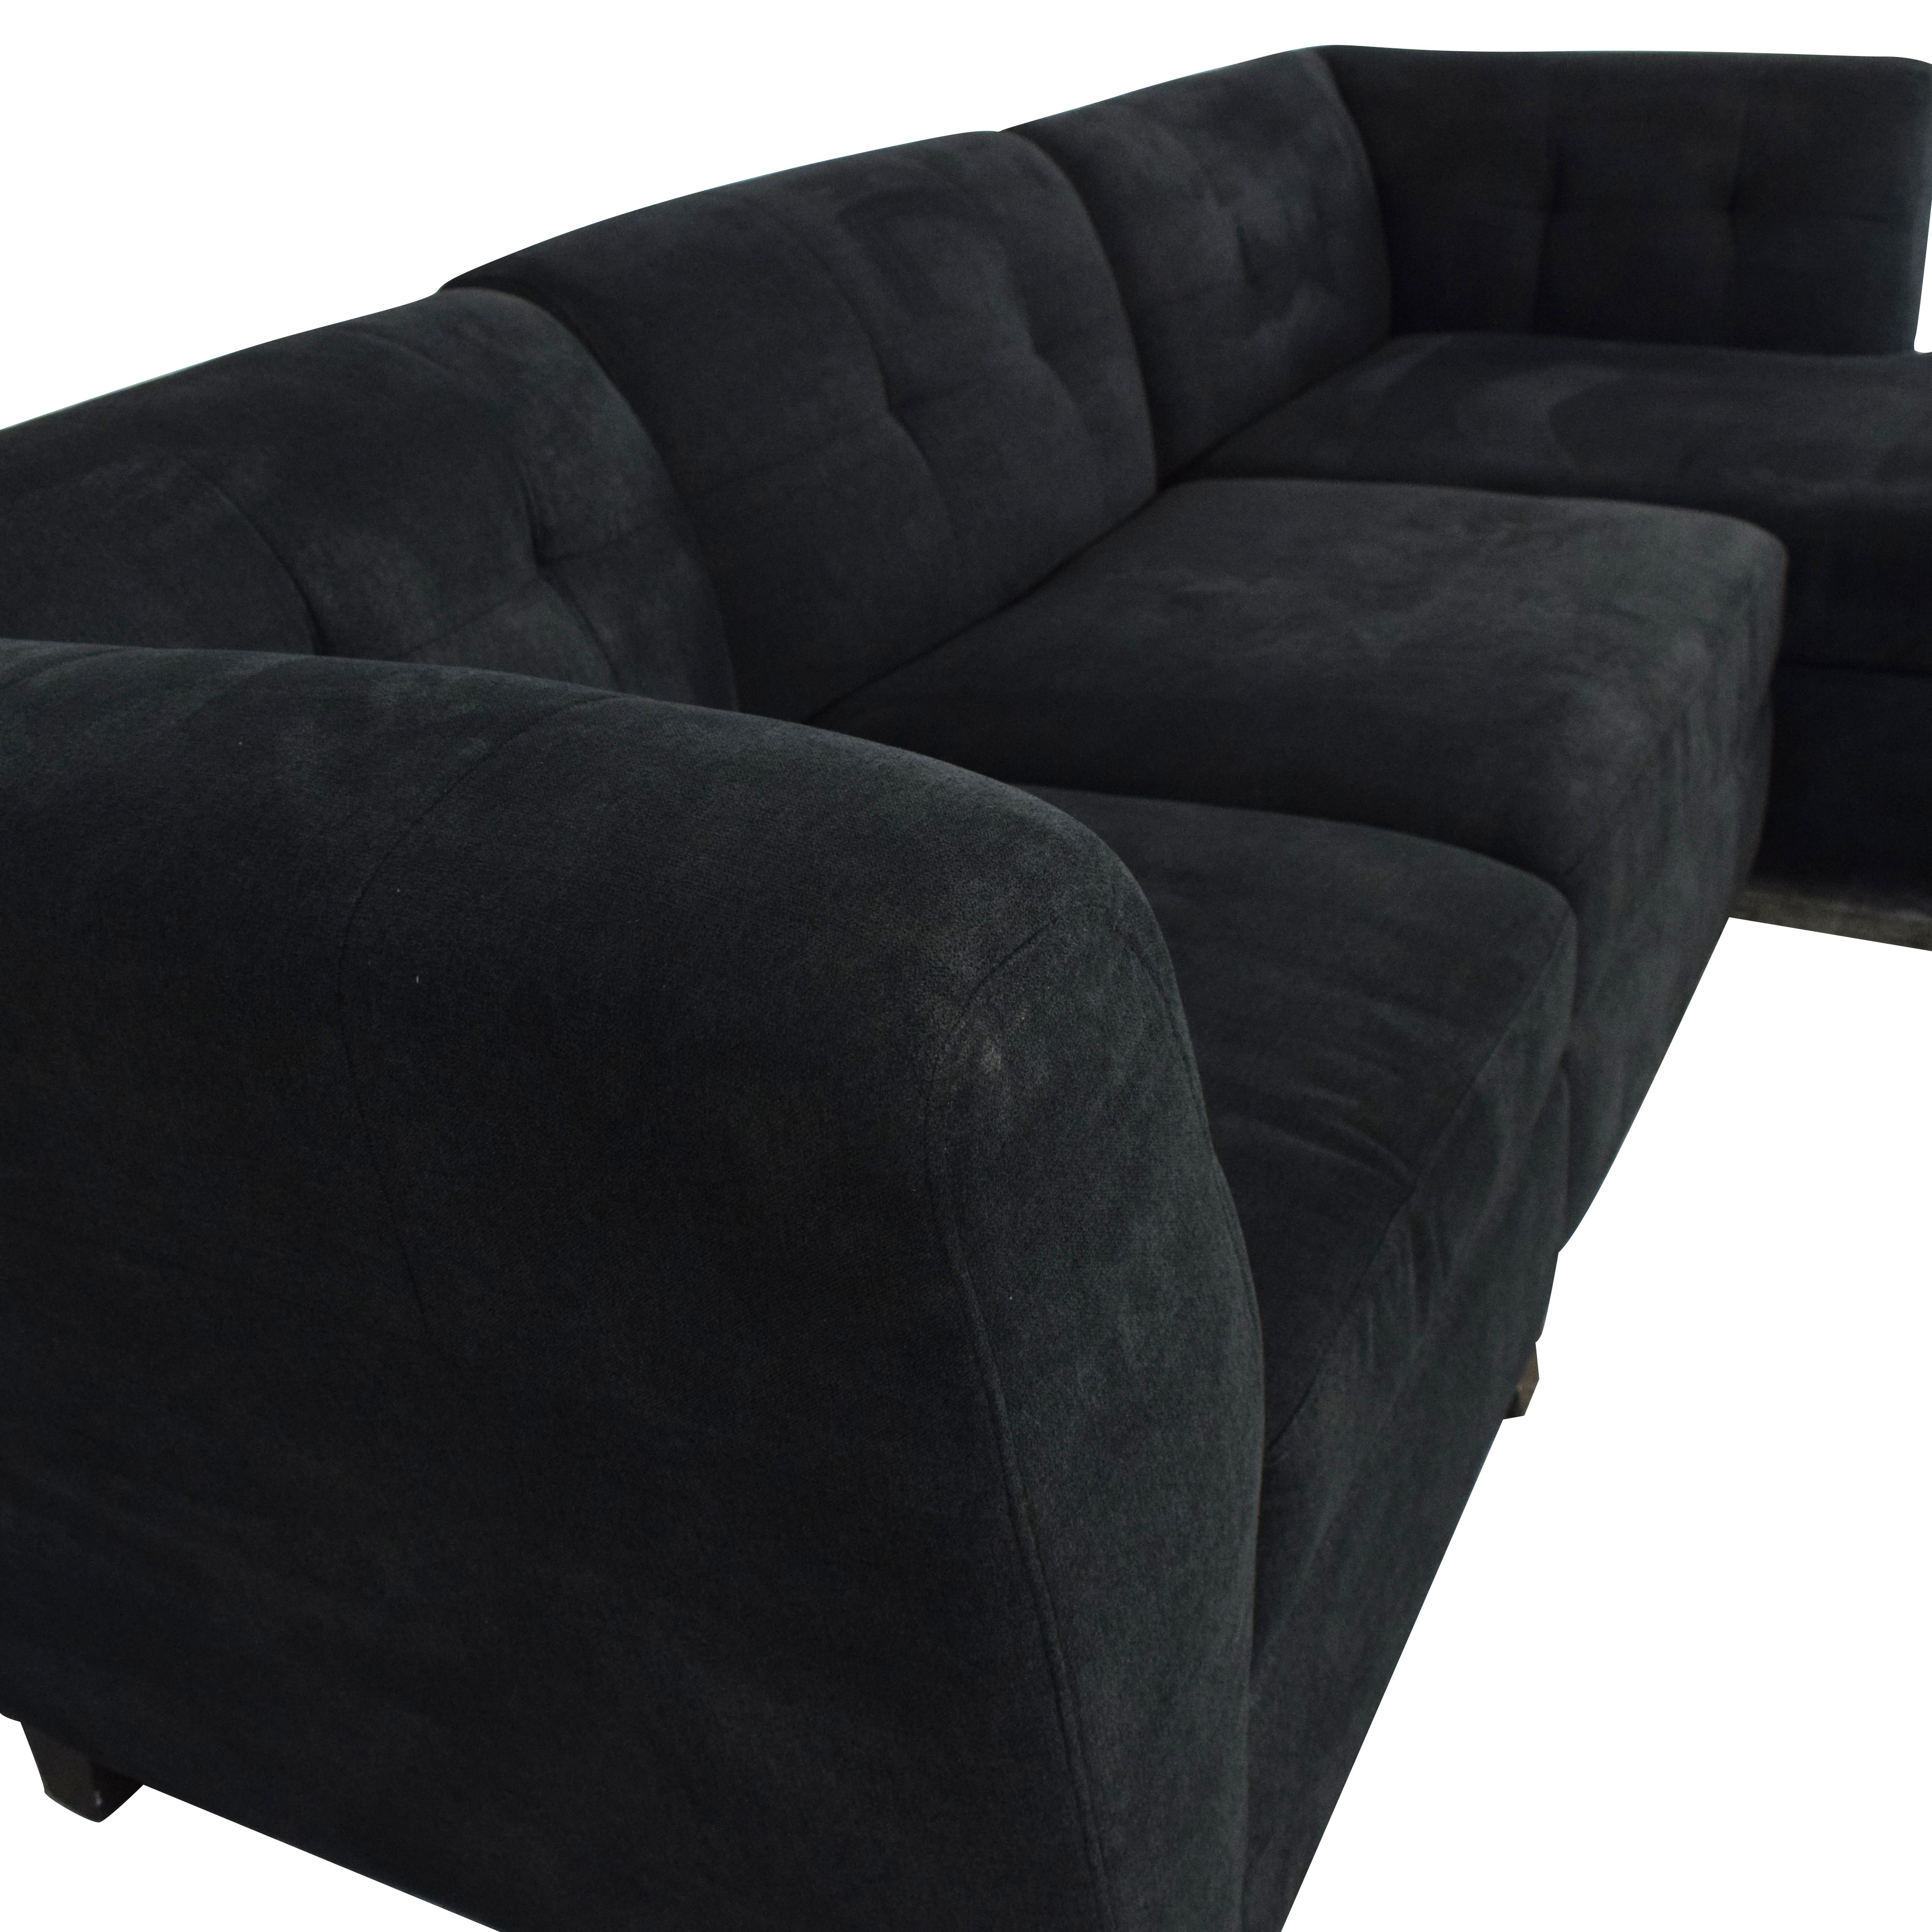 Raymour & Flanigan Raymour & Flanigan Three Piece Tate Sectional Sofa second hand